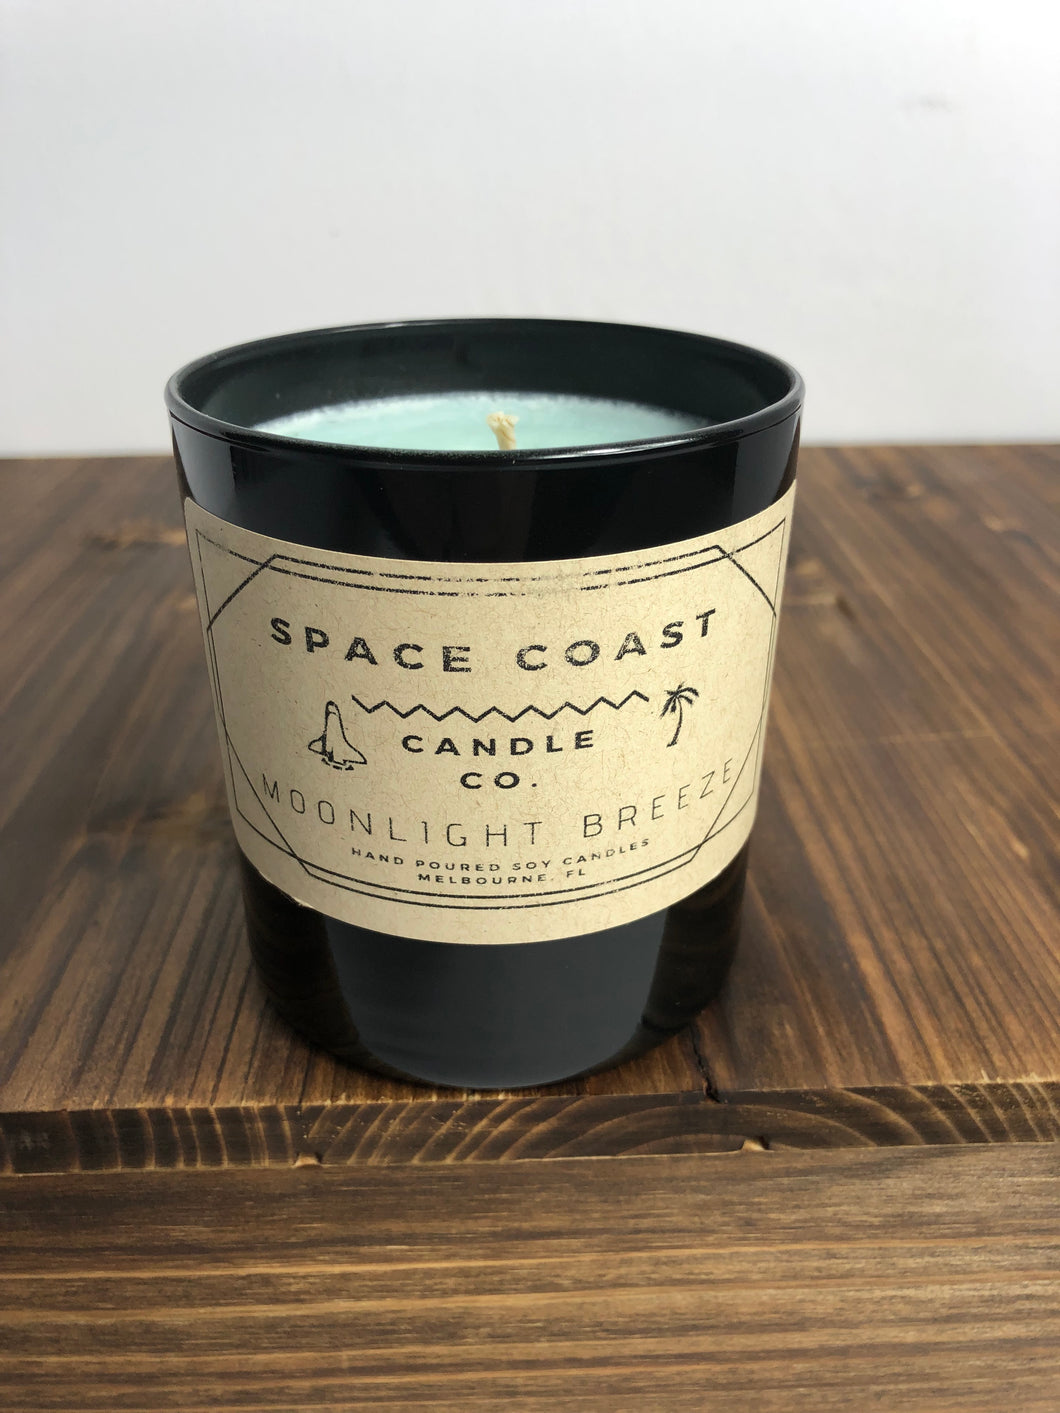 Moonlight Breeze - 10 oz Soy Candle (Tumbler) - Space Coast Candle Co.